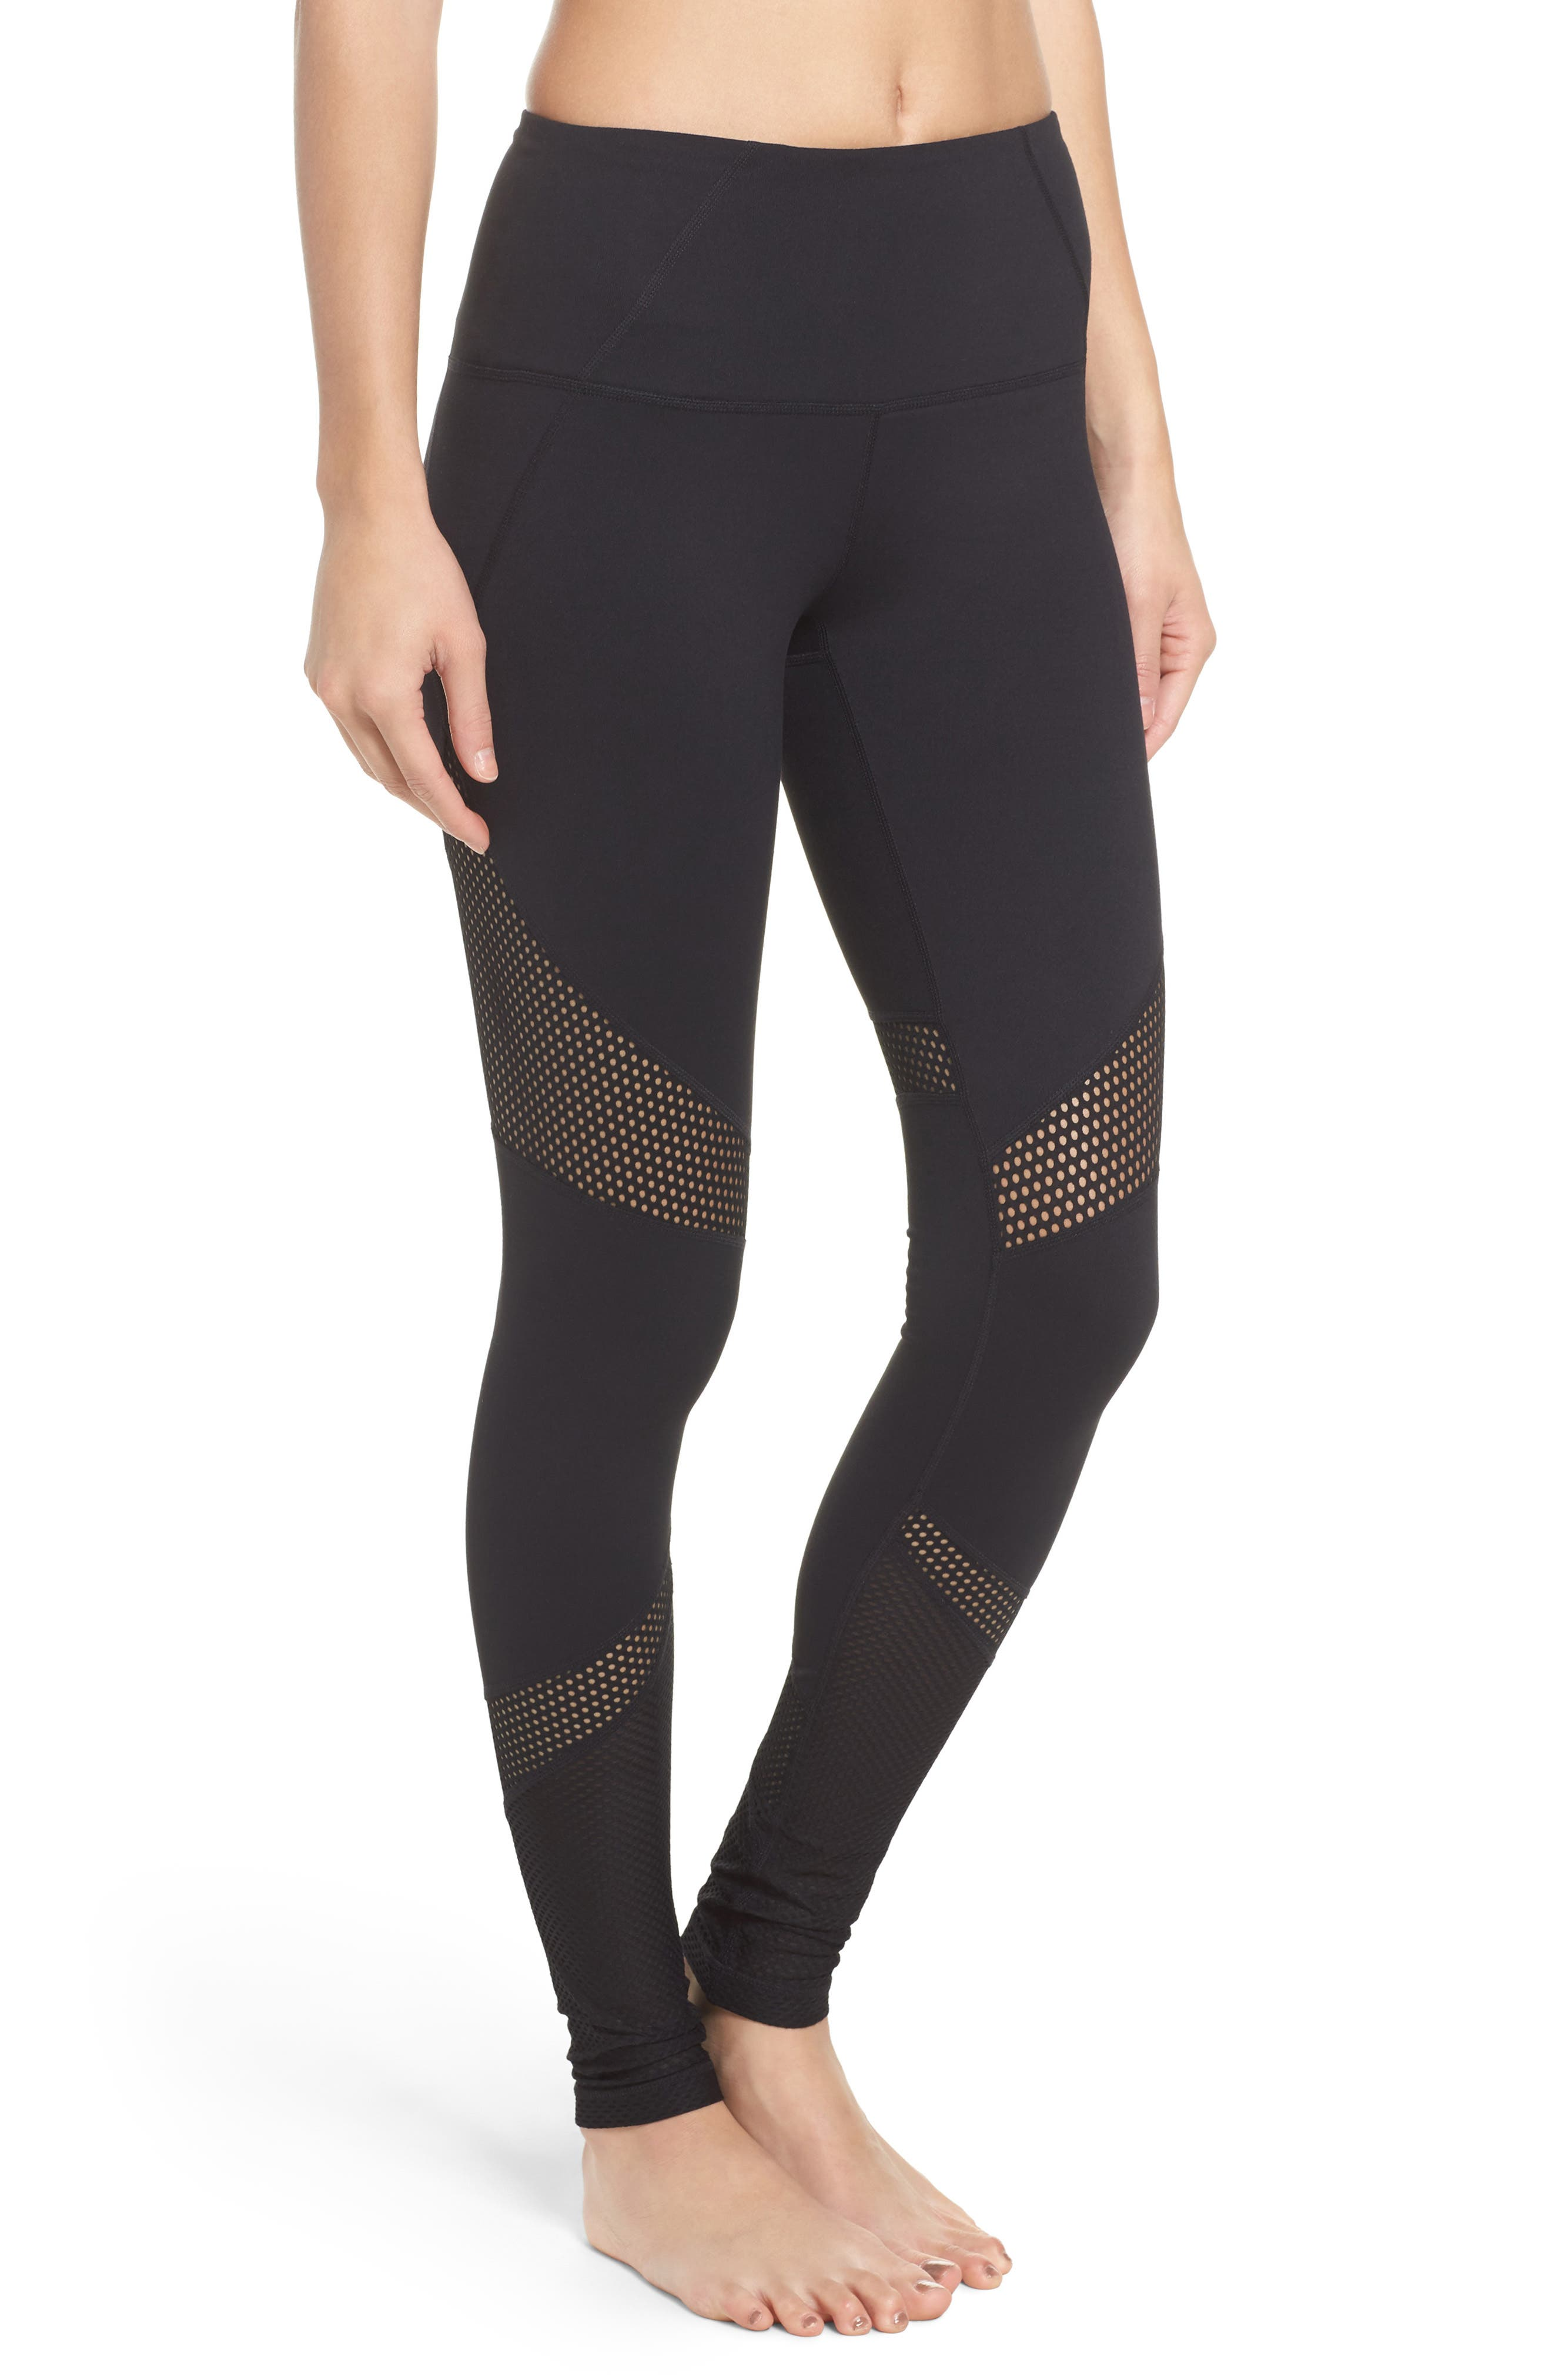 Out of Bounds High Waist Leggings,                         Main,                         color, 001